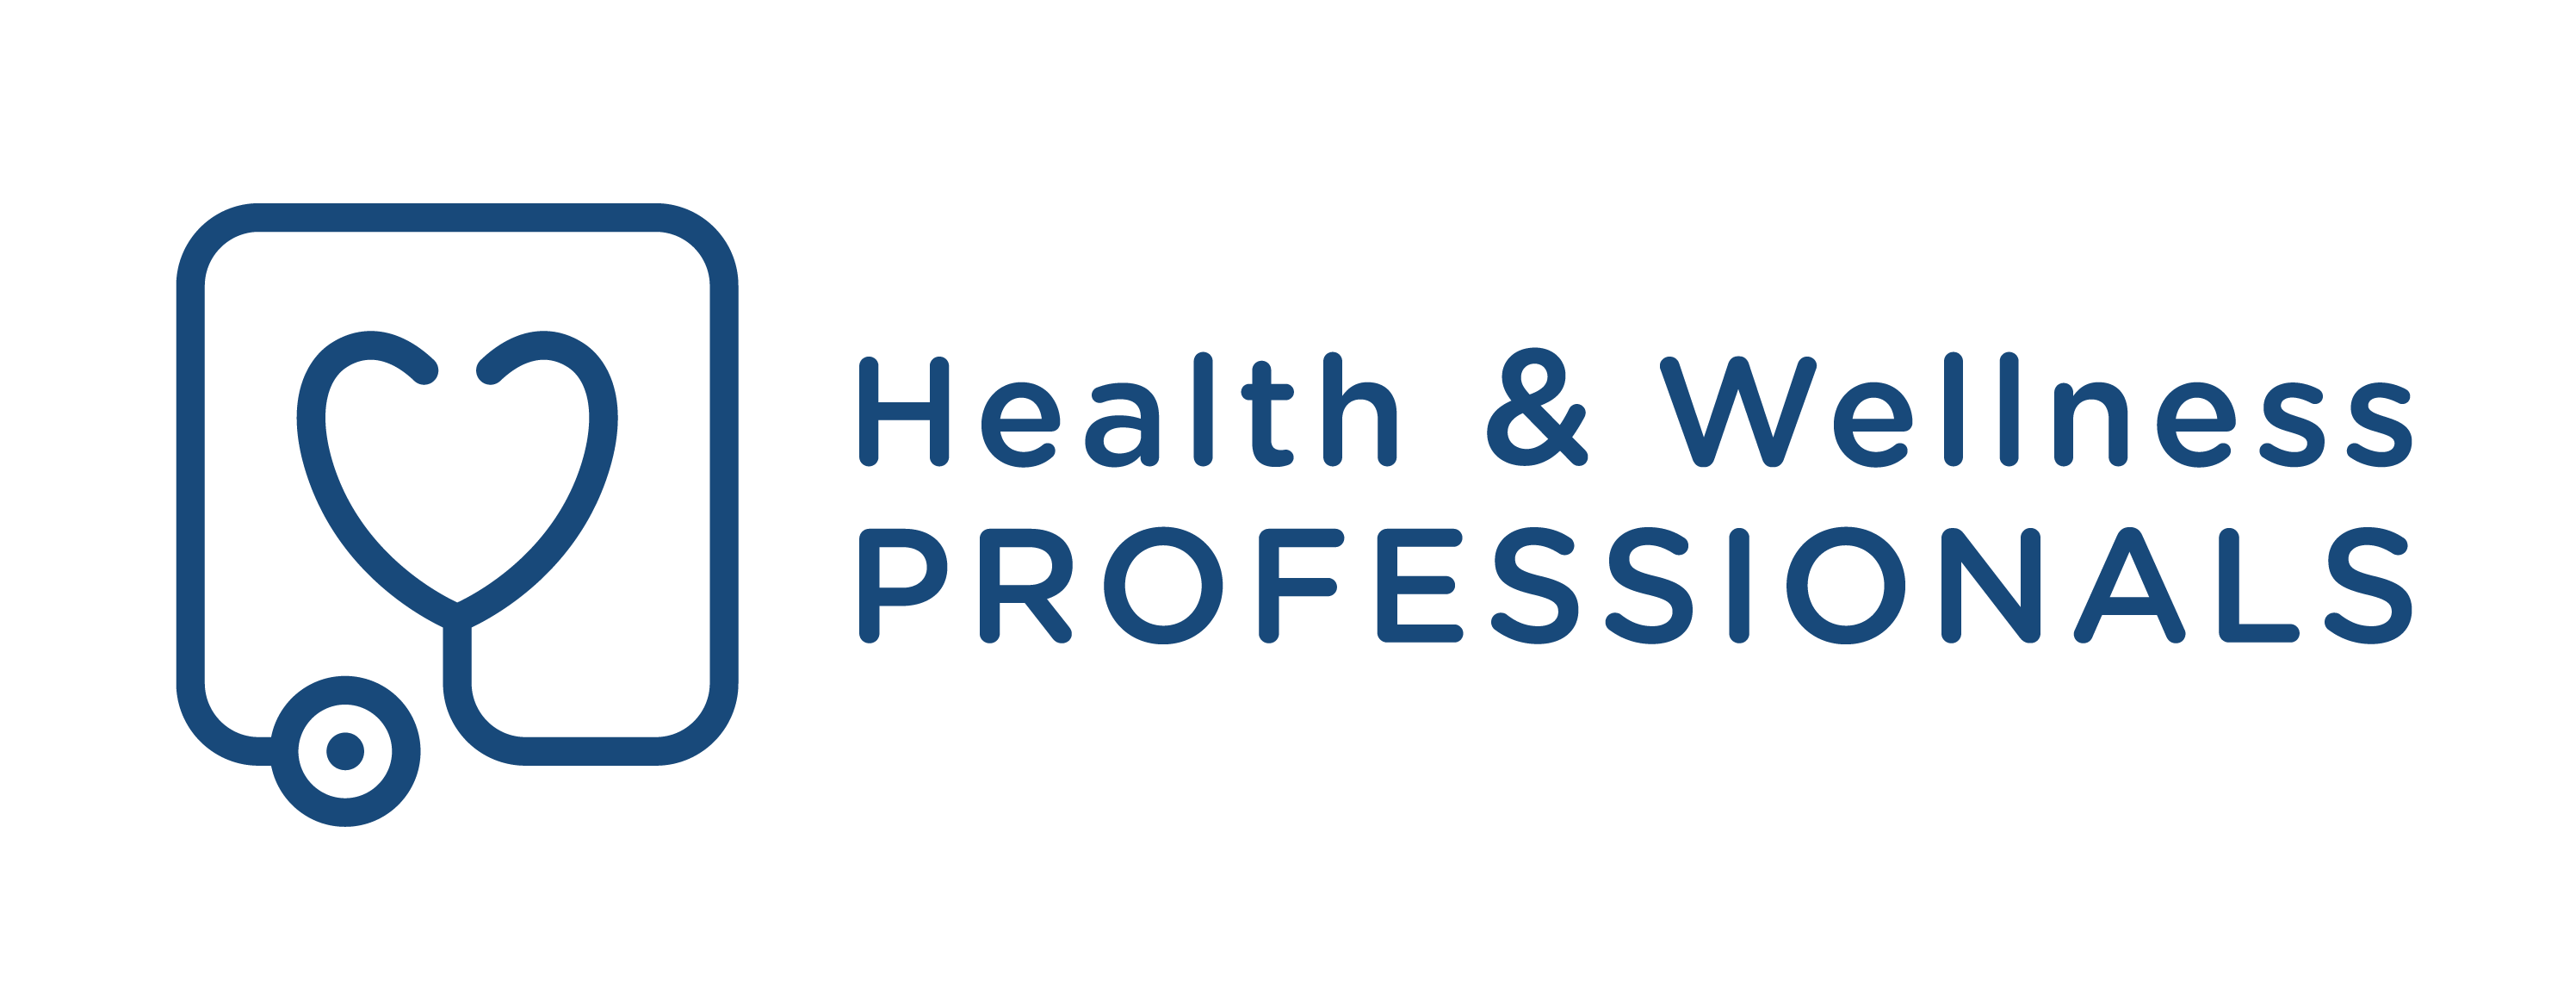 Health and Wellness Professionals – Home Test Kit Ordering Portal